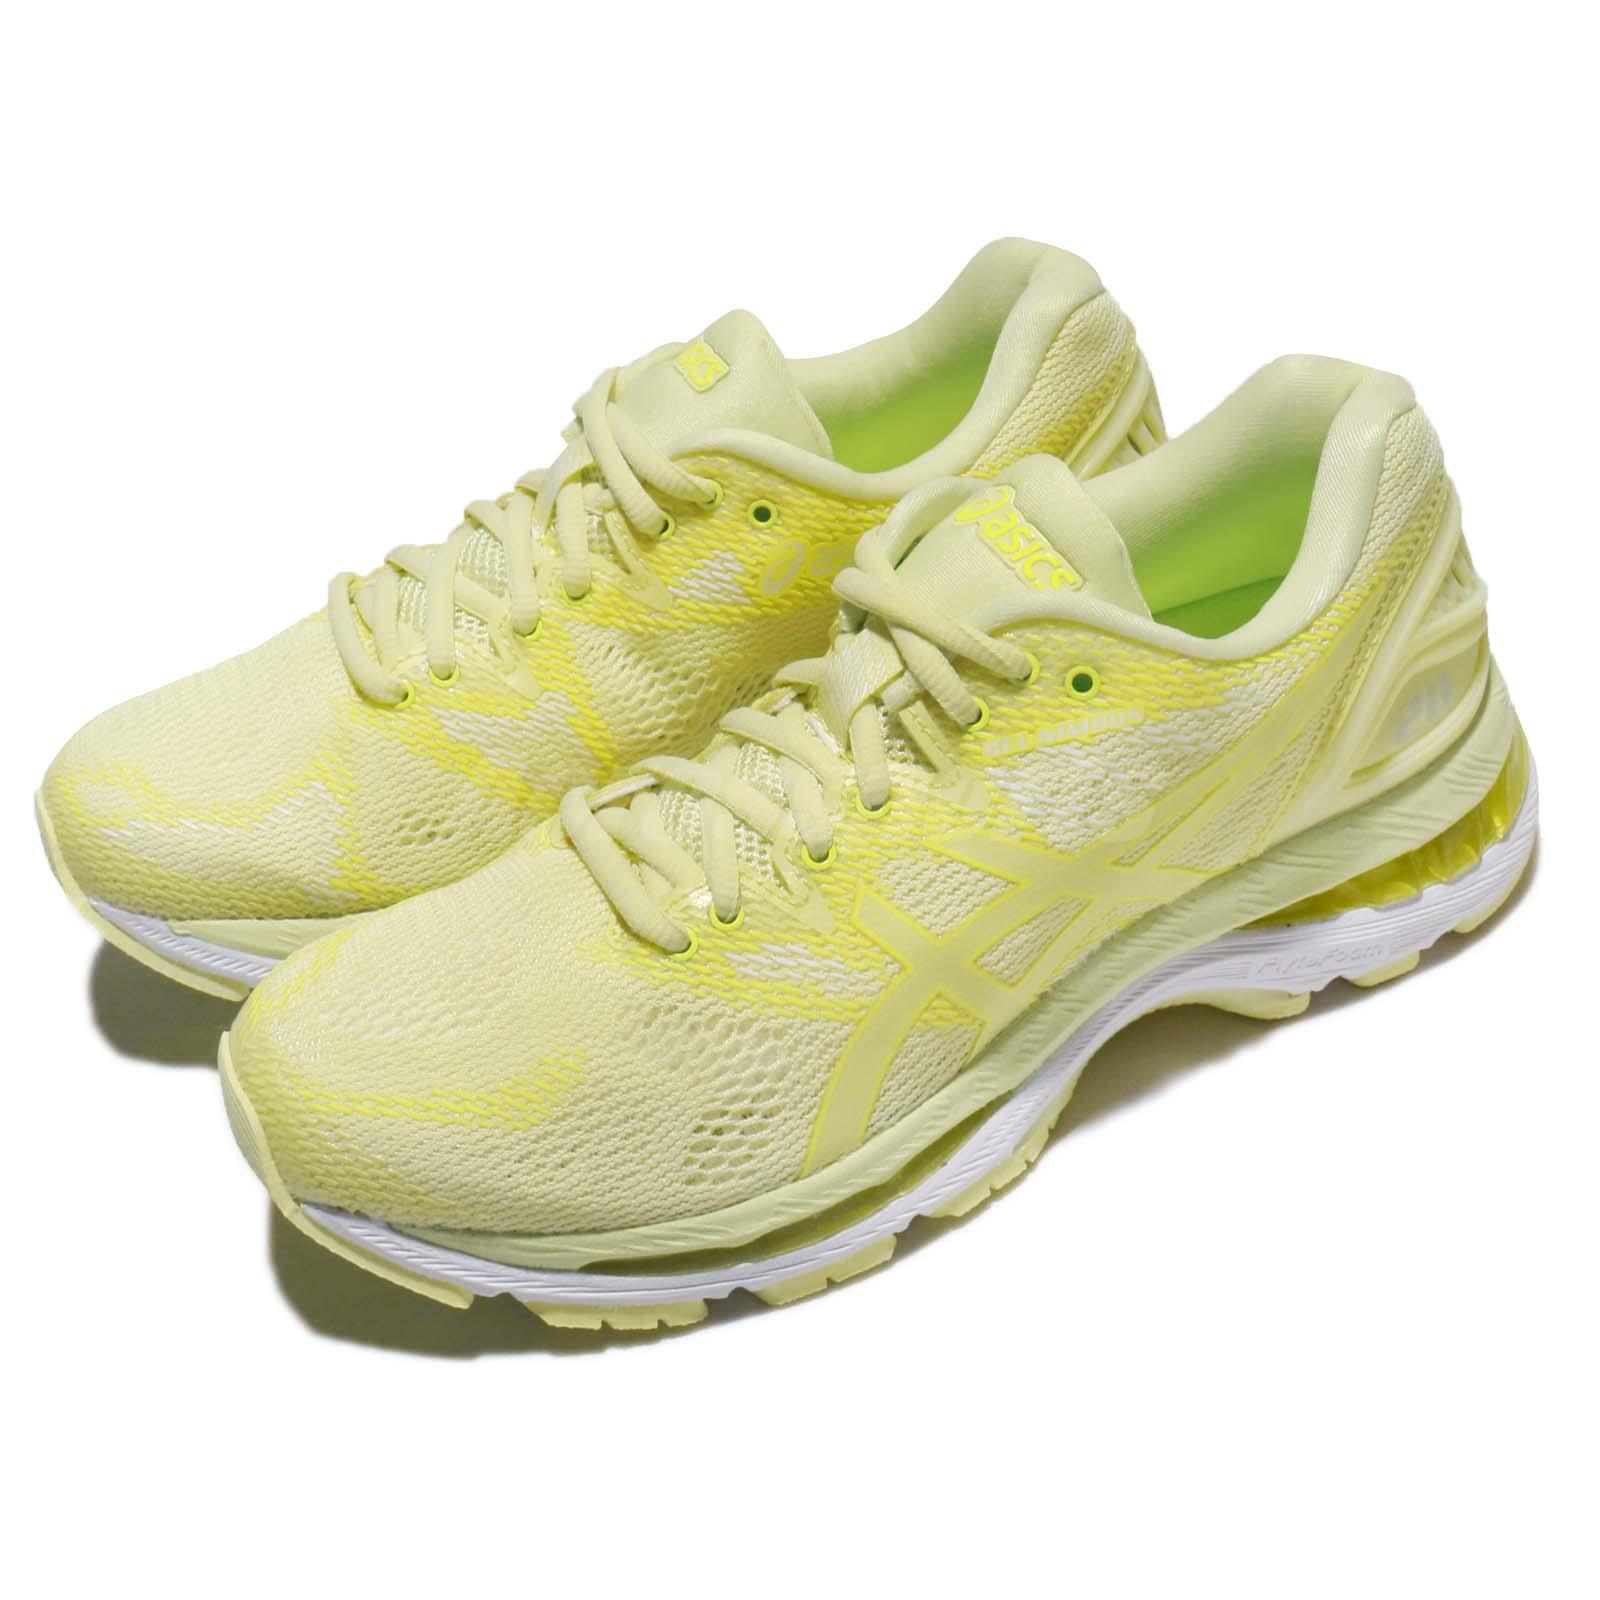 7647eff6e92d Details about Asics Gel-Nimbus 20 Limelight Yellow Women Running Shoes  Sneakers T850N-8585